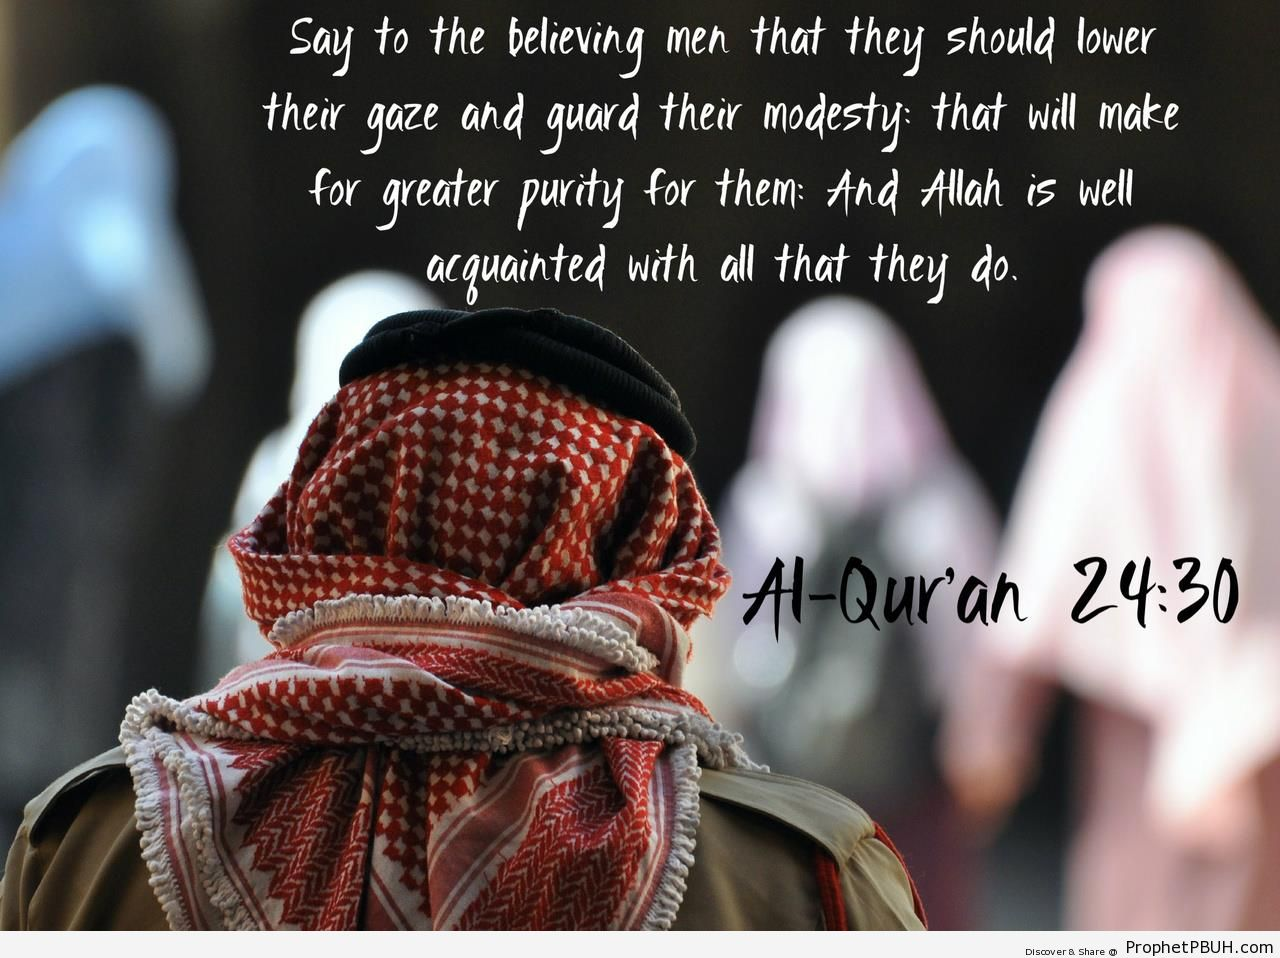 Surat an-Nur - Quran 24-30 - Islamic Quotes About Modesty and Lowering the Gaze